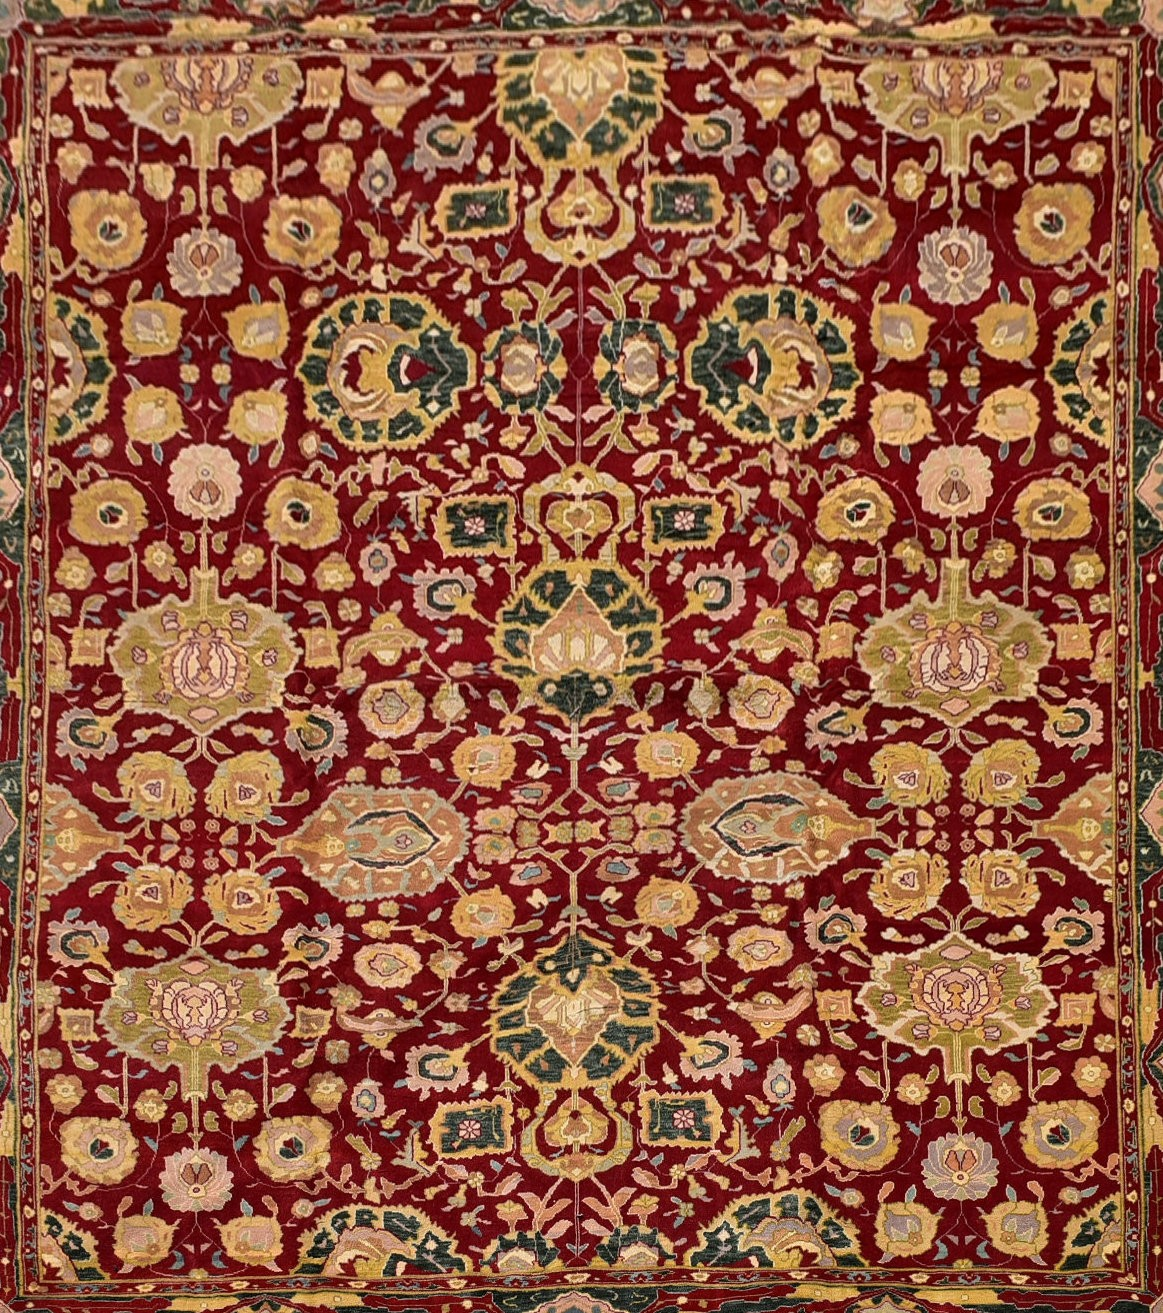 A fine large Agra carpet with all over repeating scrolling palmette and lotus flower decoration on a - Image 2 of 4